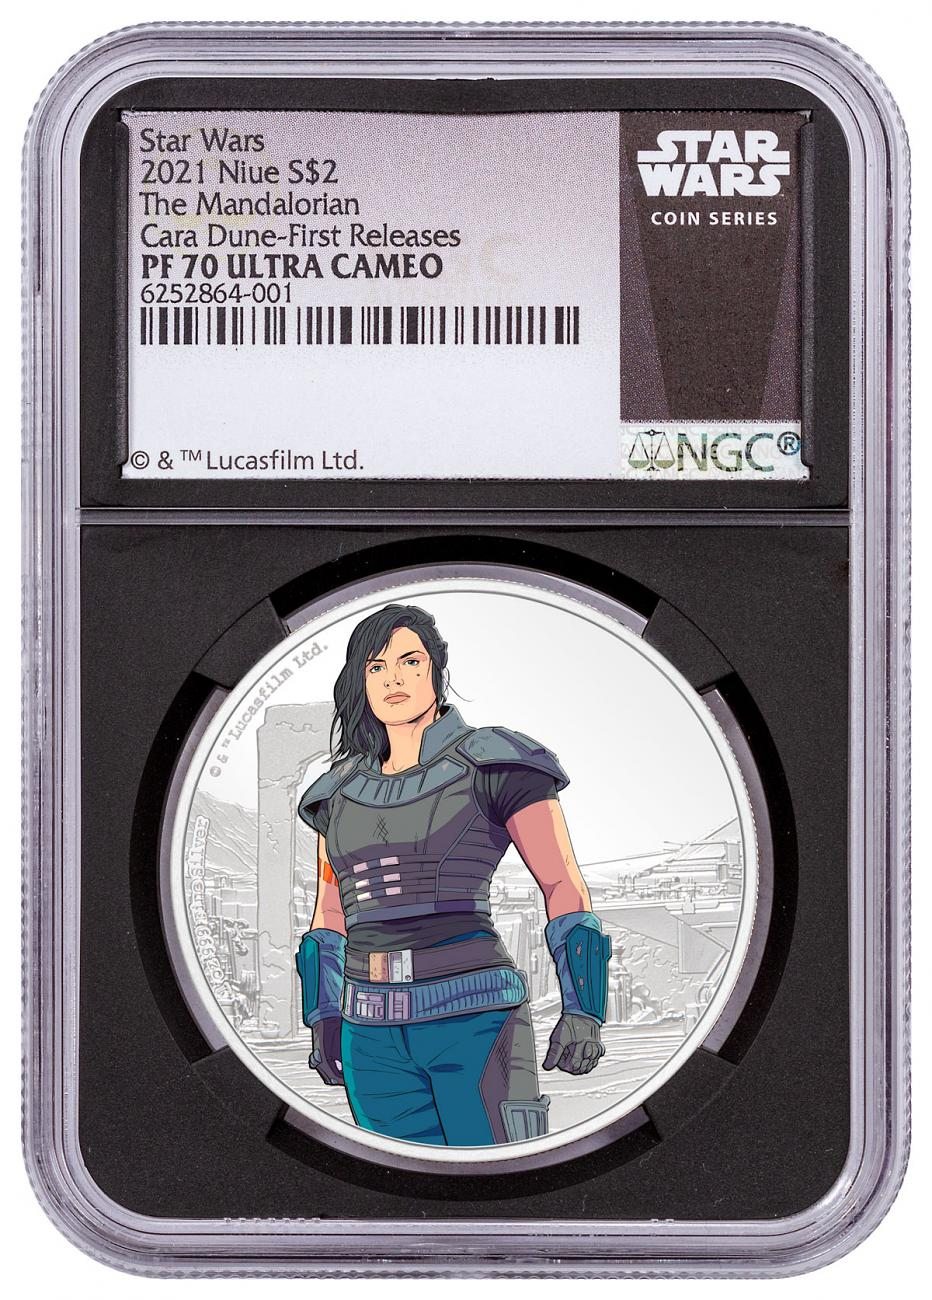 2021 Niue Star Wars Mandalorian - Cara Dune 1 oz Silver Colorized Proof $2 Coin NGC PF70 FR Black Core Holder Exclusive Star Wars Label